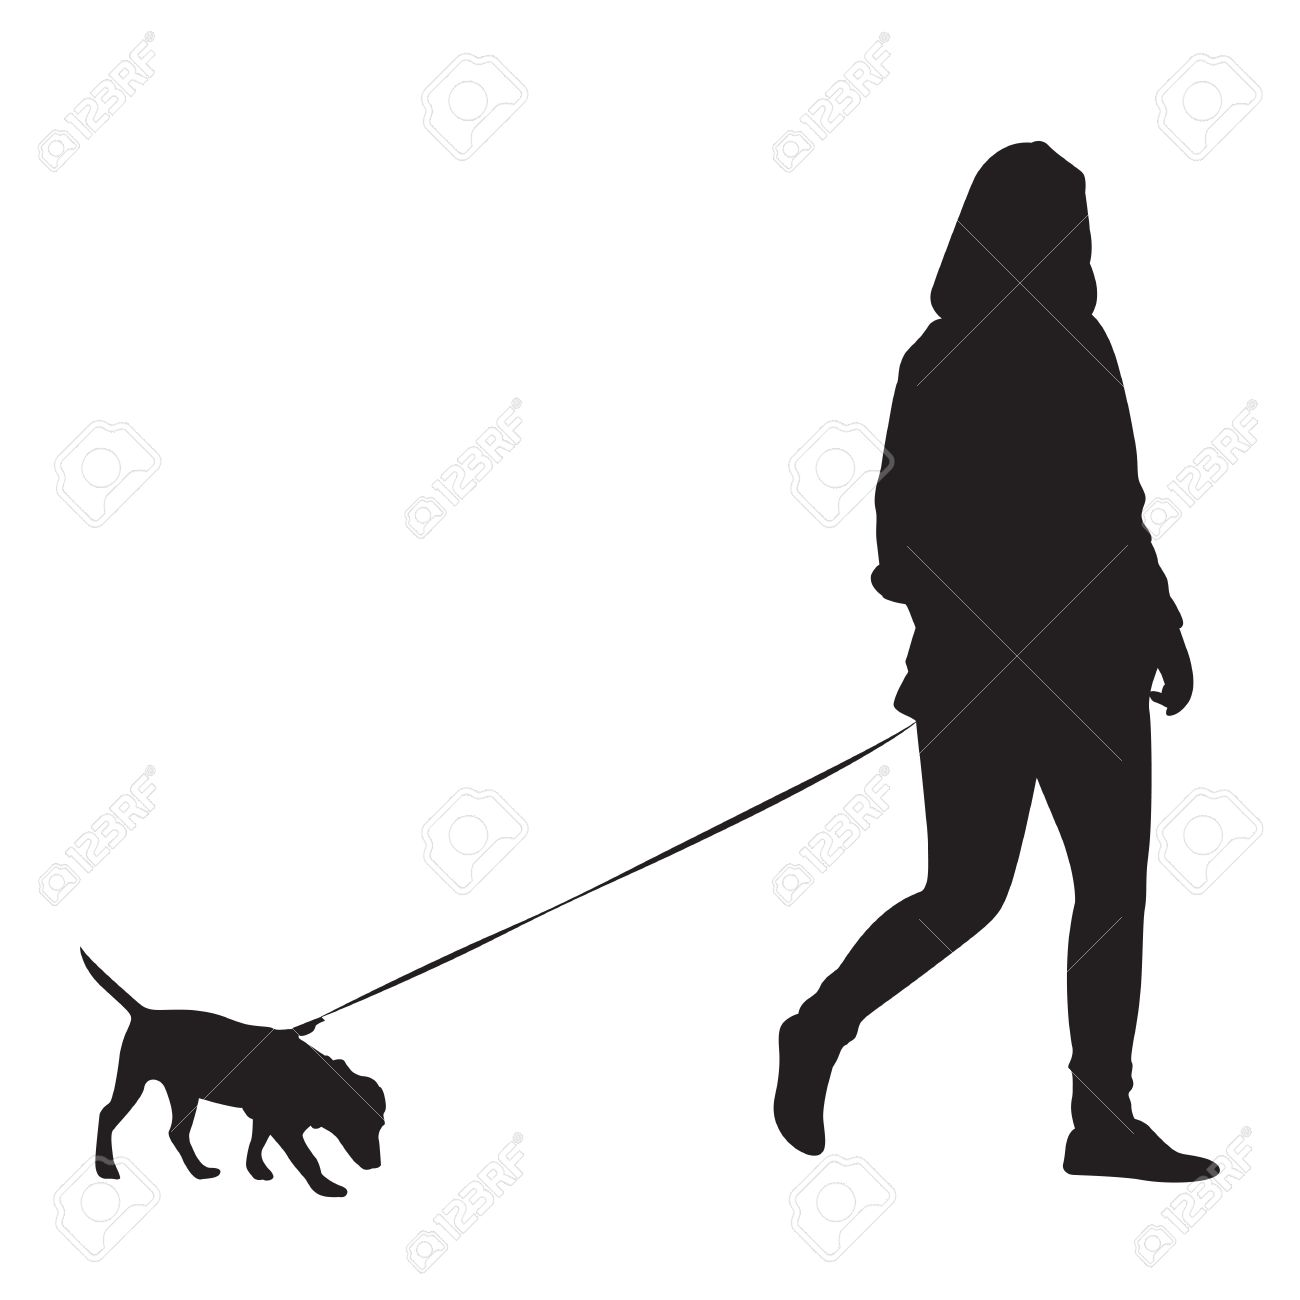 girl walking with dog silhouette royalty free cliparts vectors